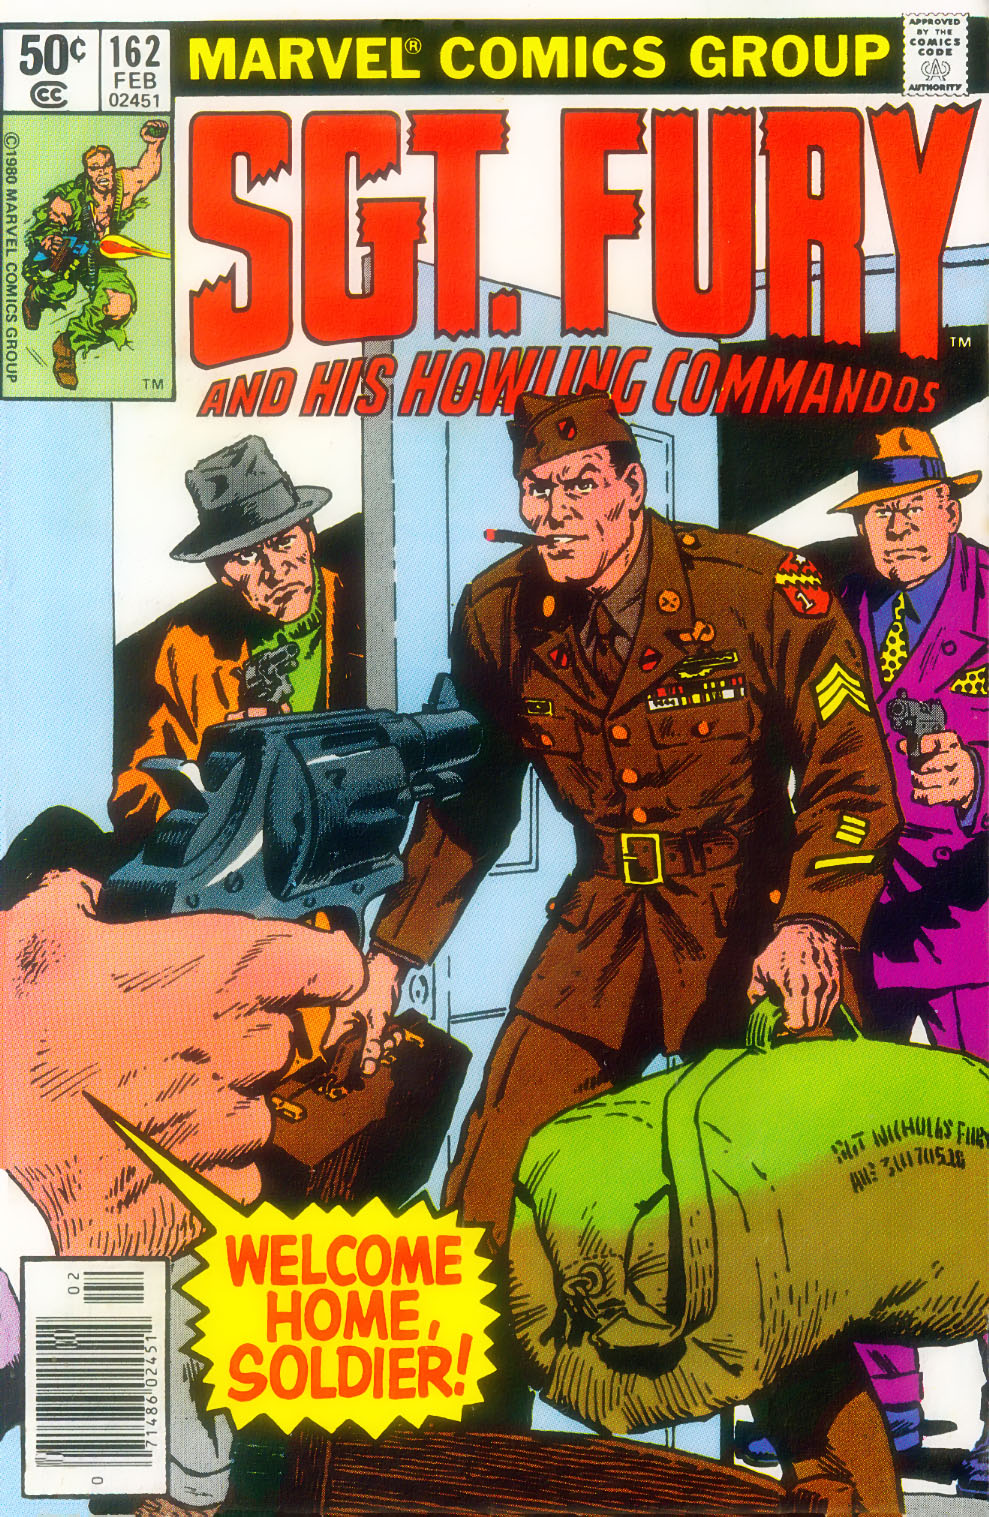 Read online Sgt. Fury comic -  Issue #162 - 1